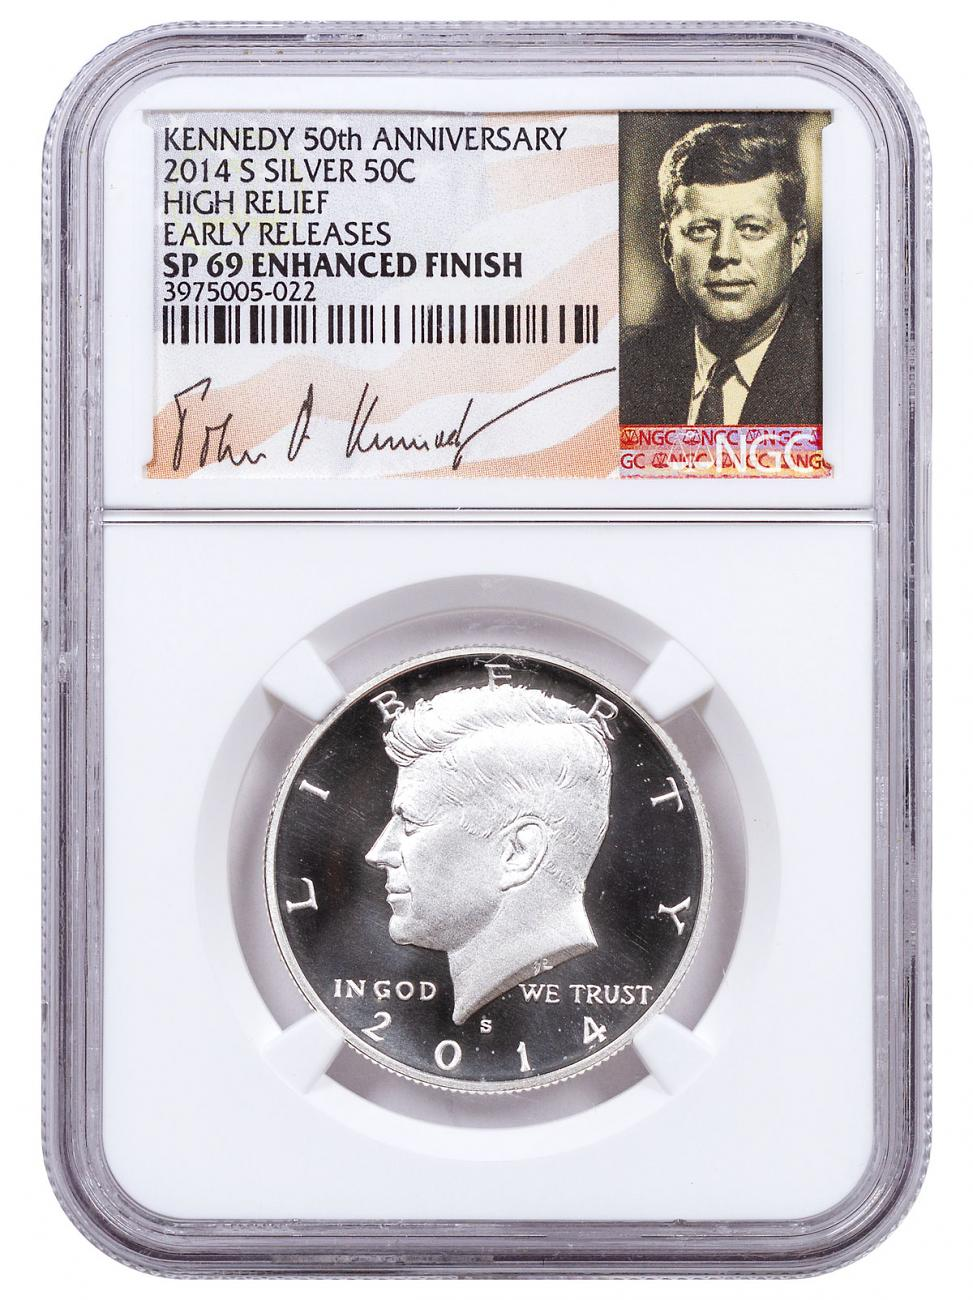 2014-S Silver 50th Anniversary Specimen High Relief Kennedy Half Dollar NGC SP69